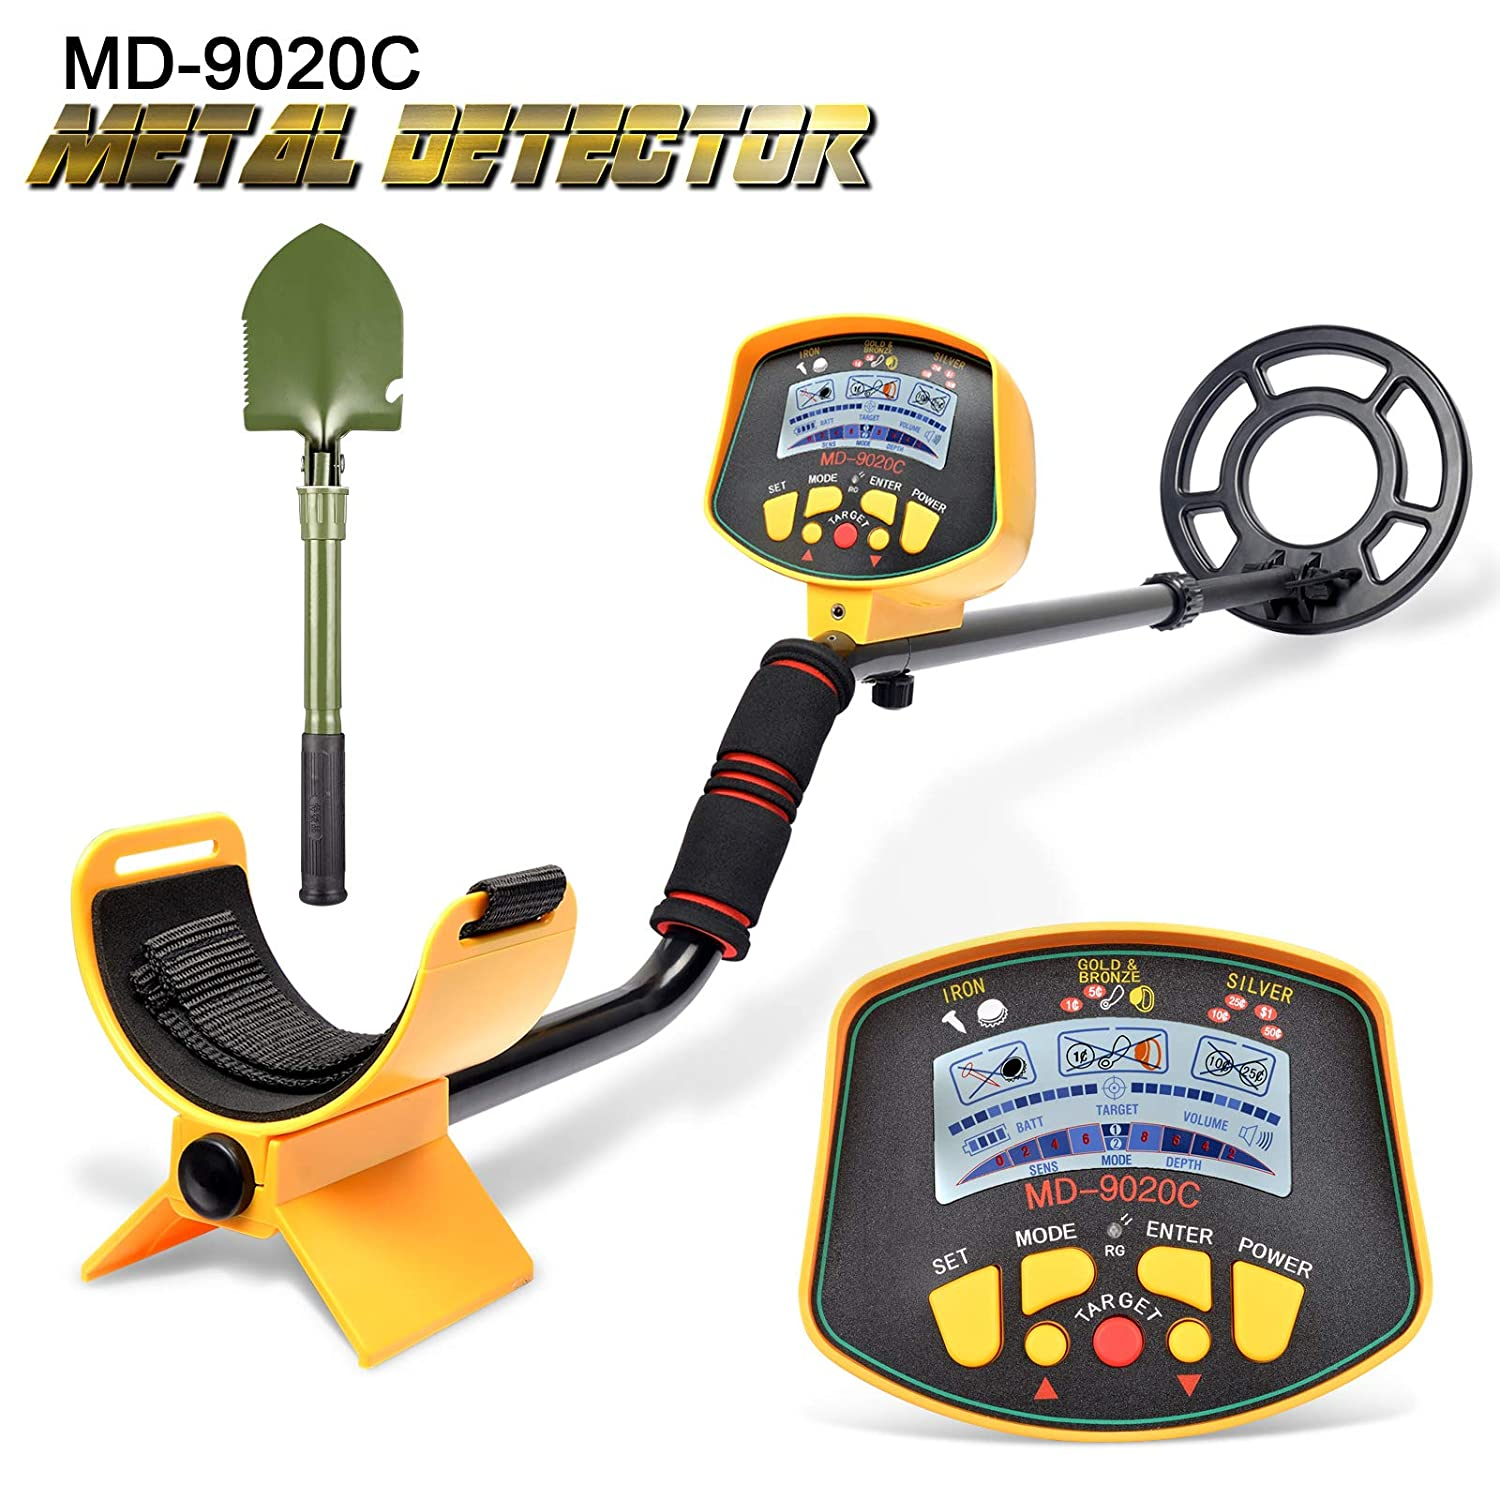 VVinRC Professional Metal Detector with Pinpointer Function, High Sensitivity Metal Detector for Adults Kids Waterproof Search Coil Underground Treasure Hunter LCD Display